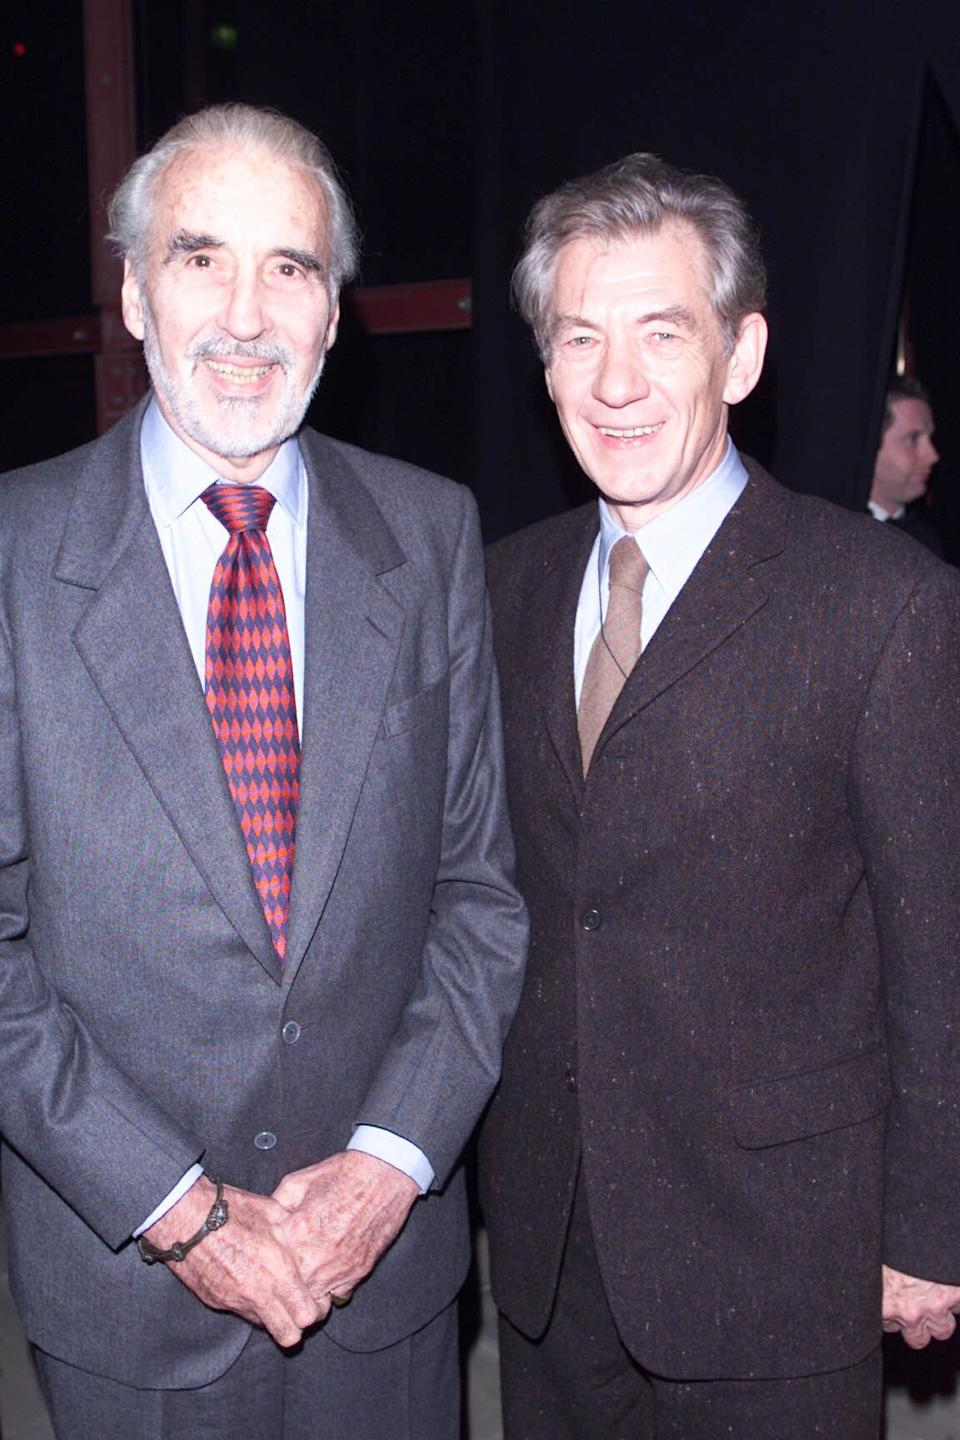 """LONDON - DECEMBER 11: British actor Christopher Lee and Ian McKellen attend the premiere party for the film """"Lord of the Rings: The Fellowship of the Ring"""" at Tobacco Dock on December 11, 2001 in London. (Photo by Dave Hogan/Getty Images)"""